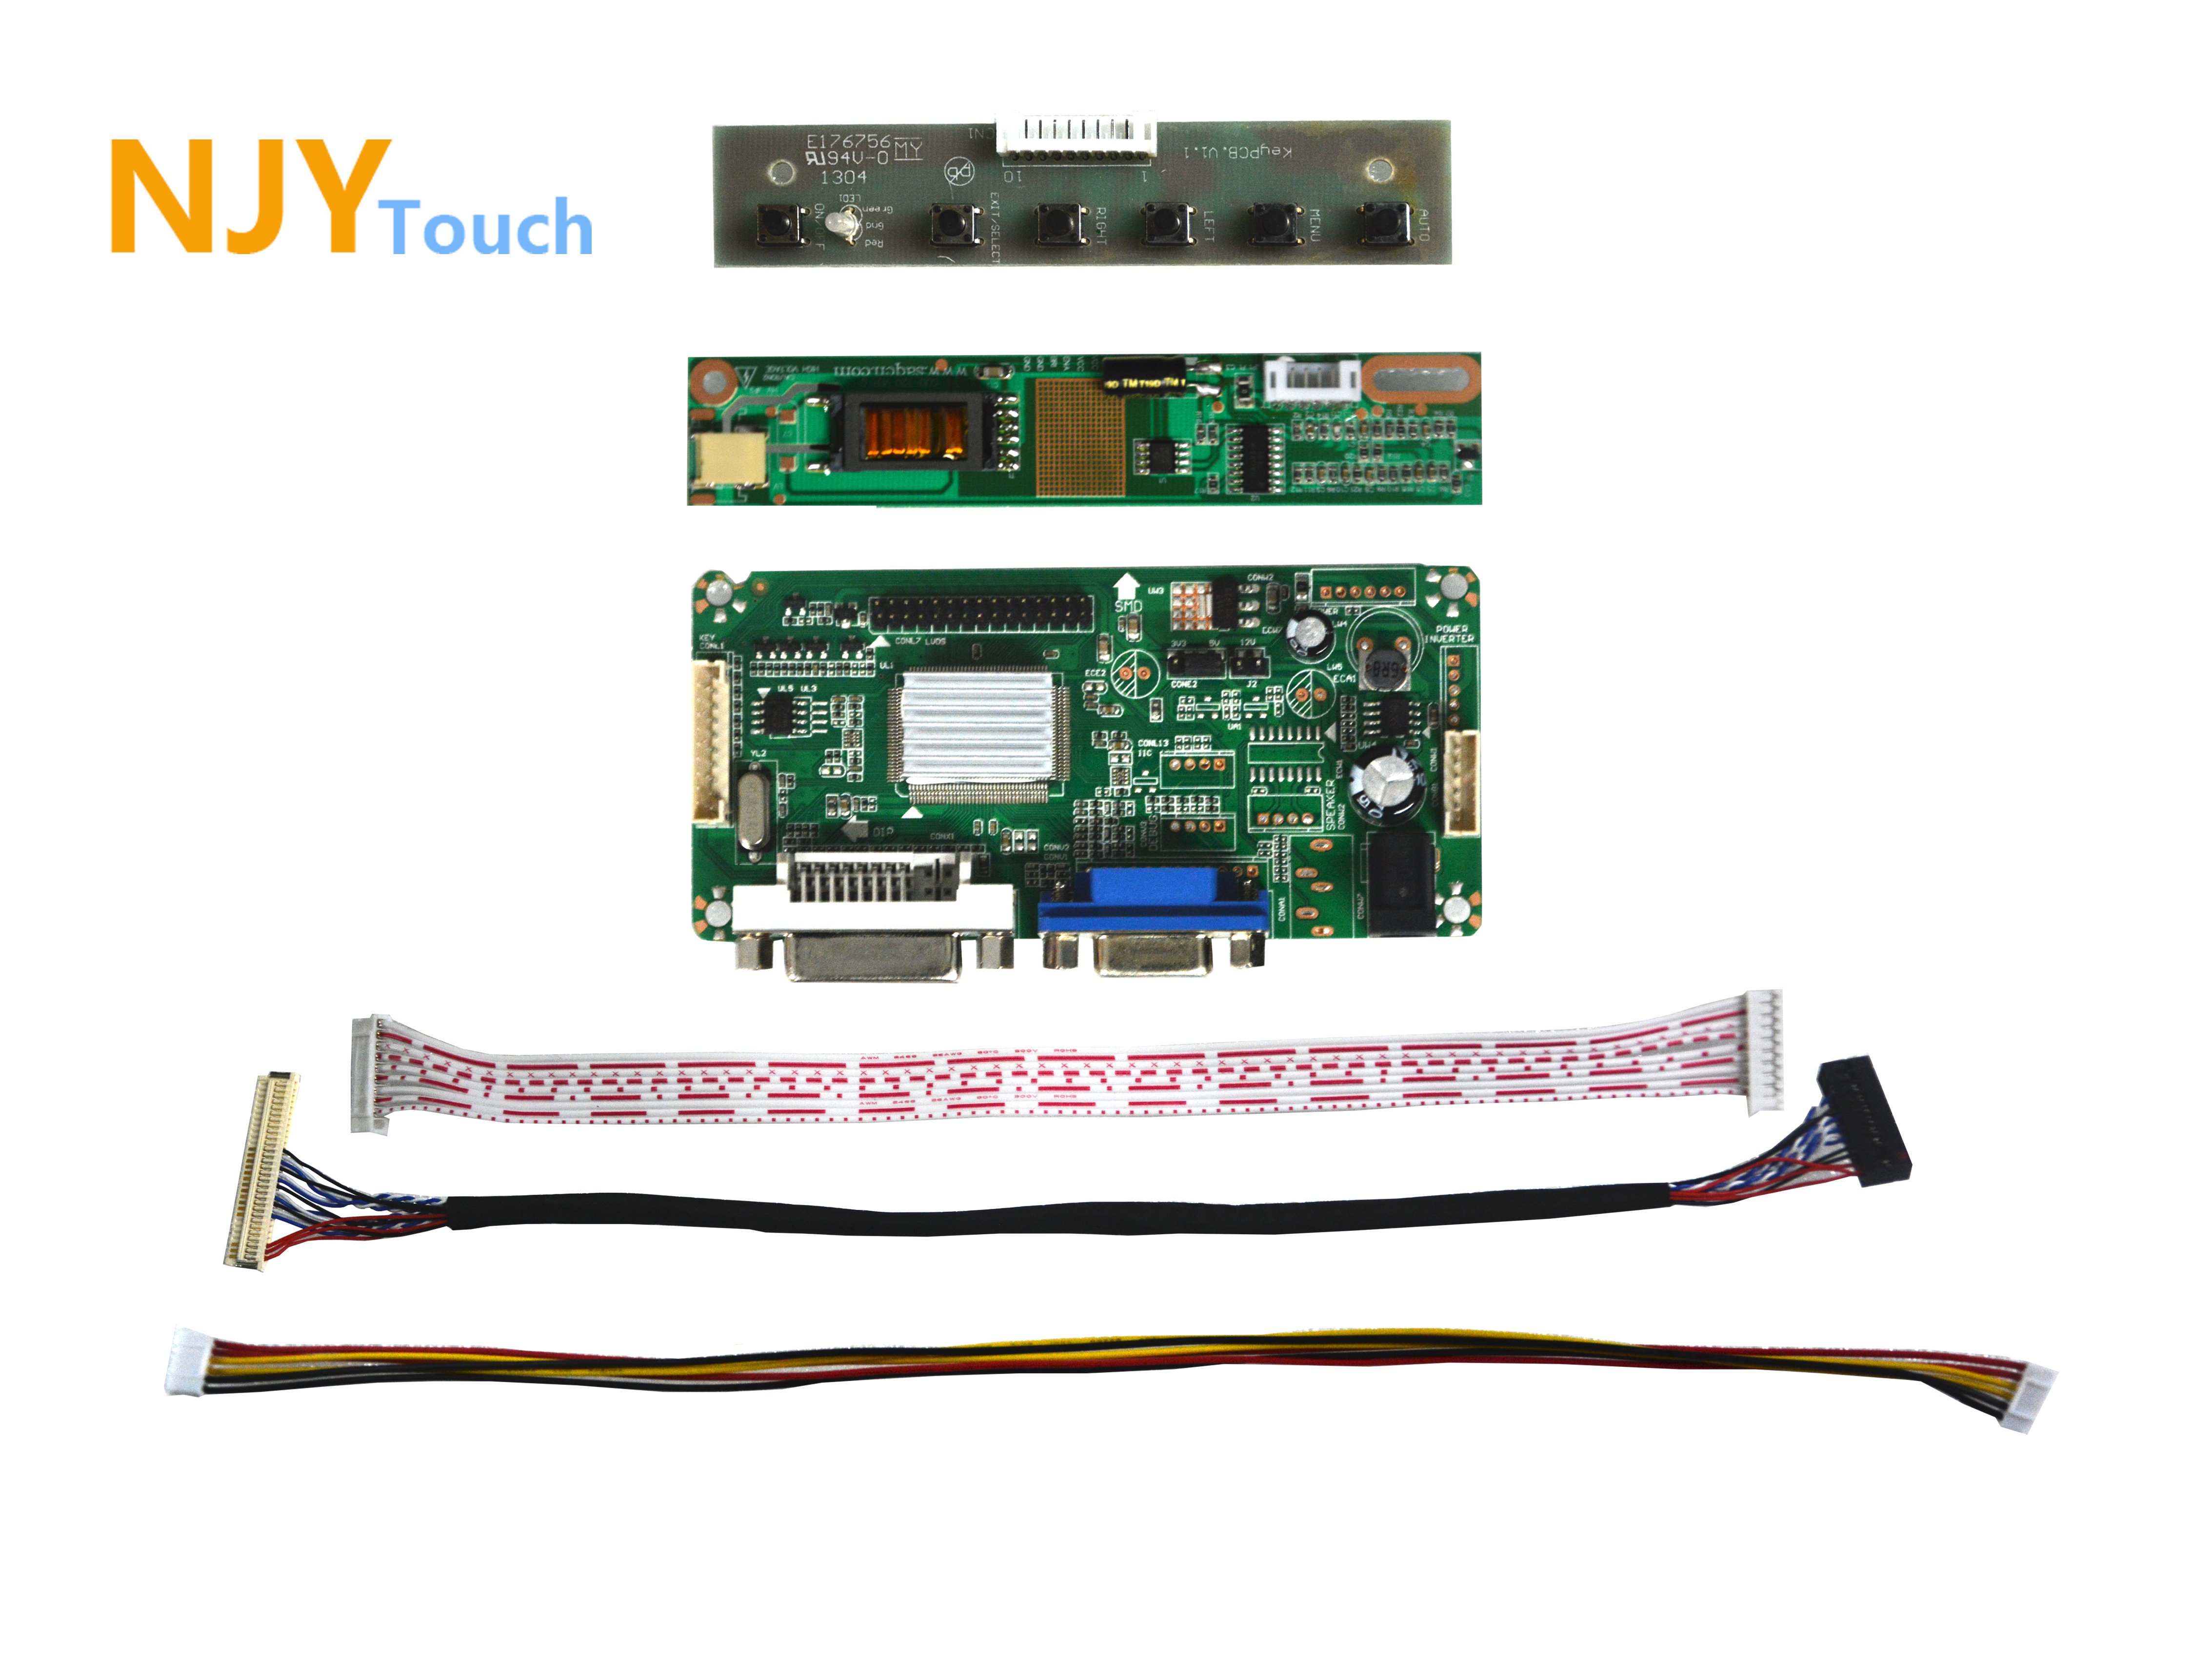 NJYTouch LM.R61 DVI VGA LCD Controller Driver Board For 15.4inch N154I1-L02 N154I2-L03 N154I5-L02 1280x800 LED Screen